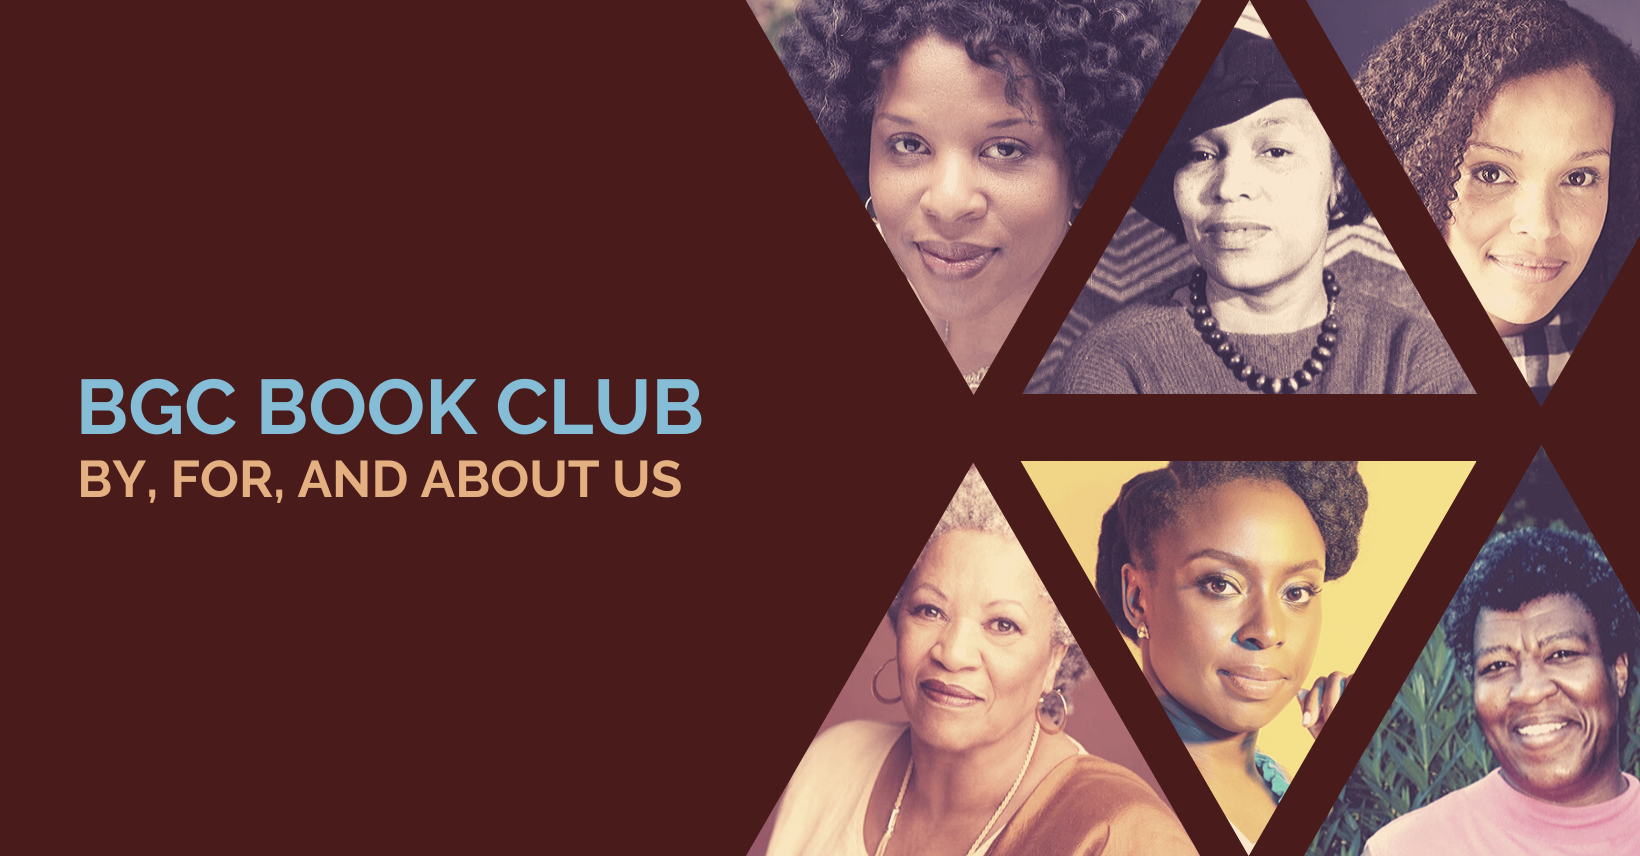 Introducing the BGC Book Club